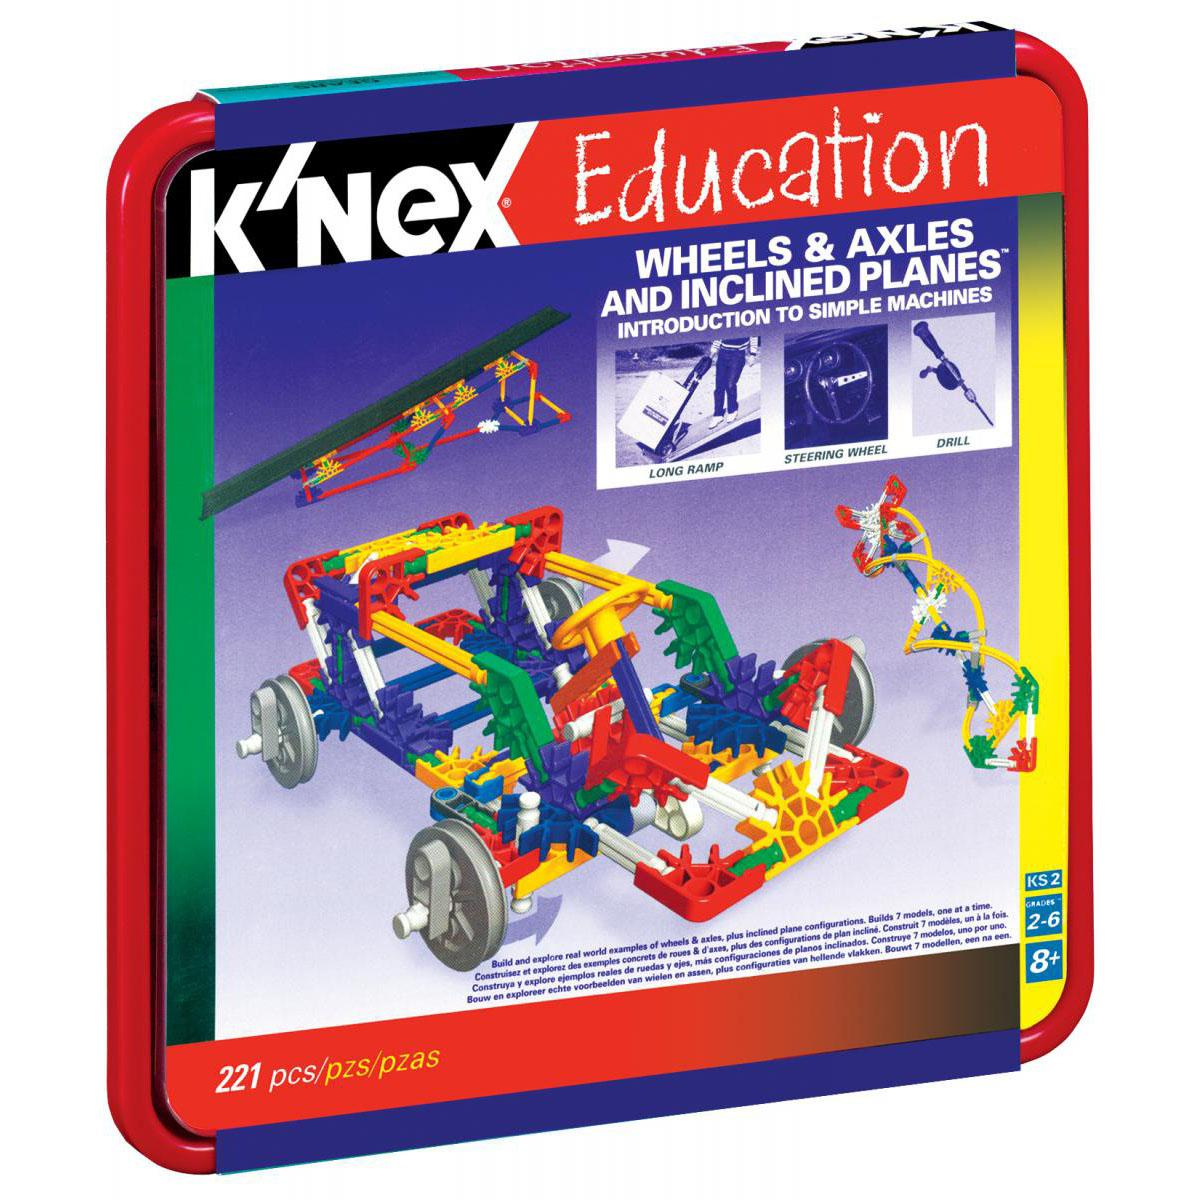 K'Nex® Introduction to Simple Machines: Wheels & Axles and Inclined Planes